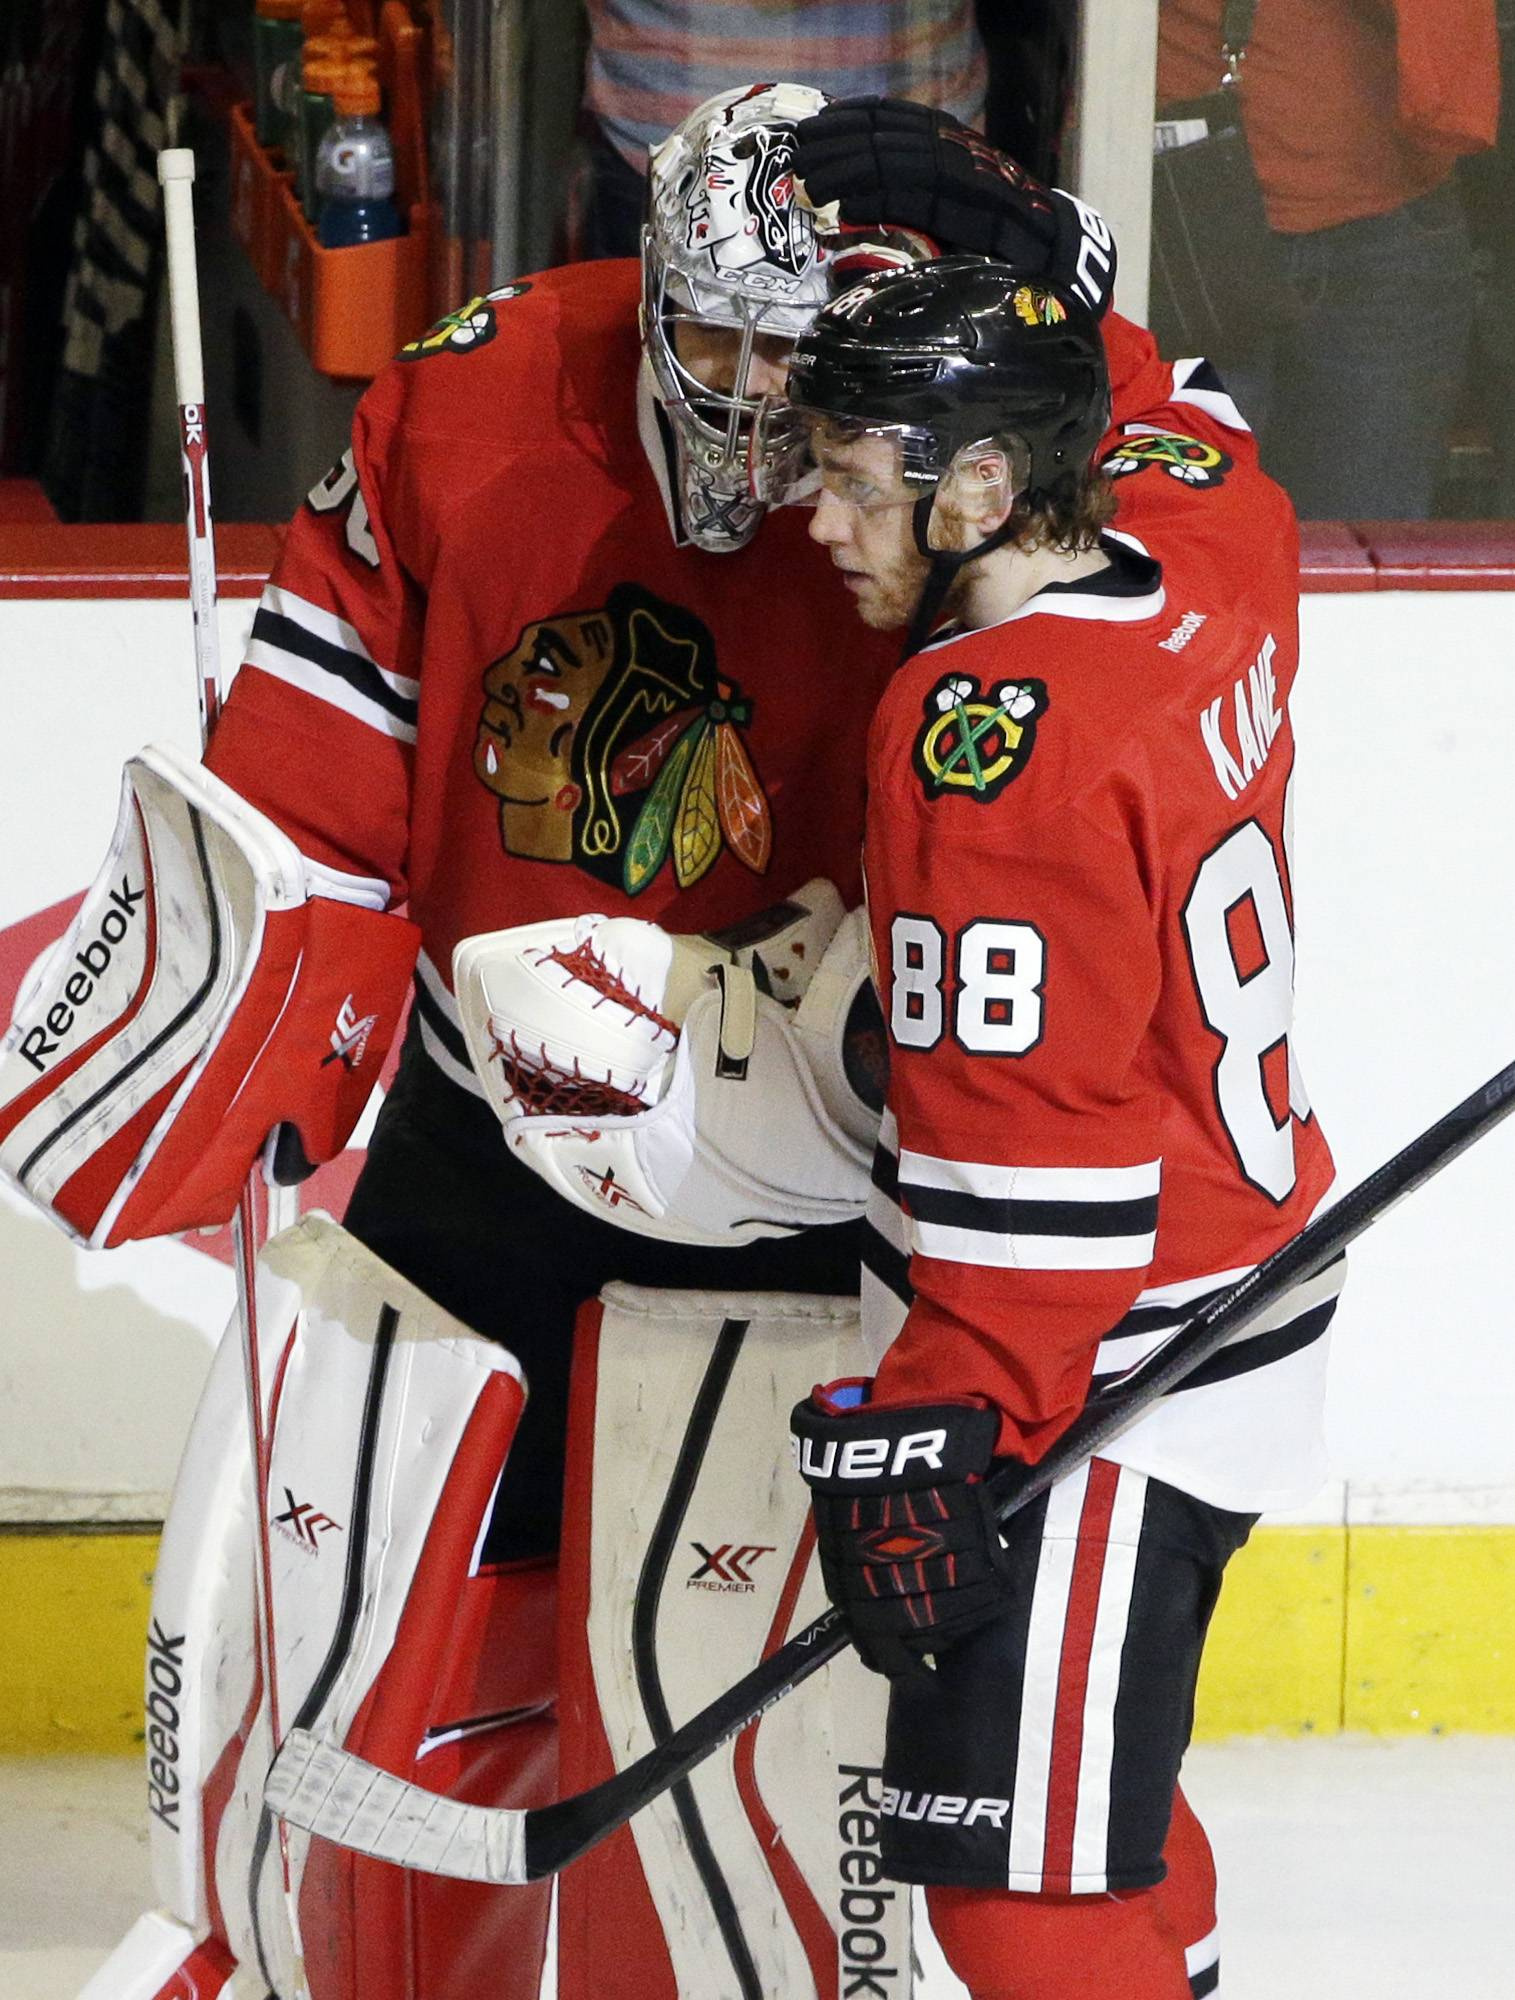 Blackhawks goalie Corey Crawford celebra